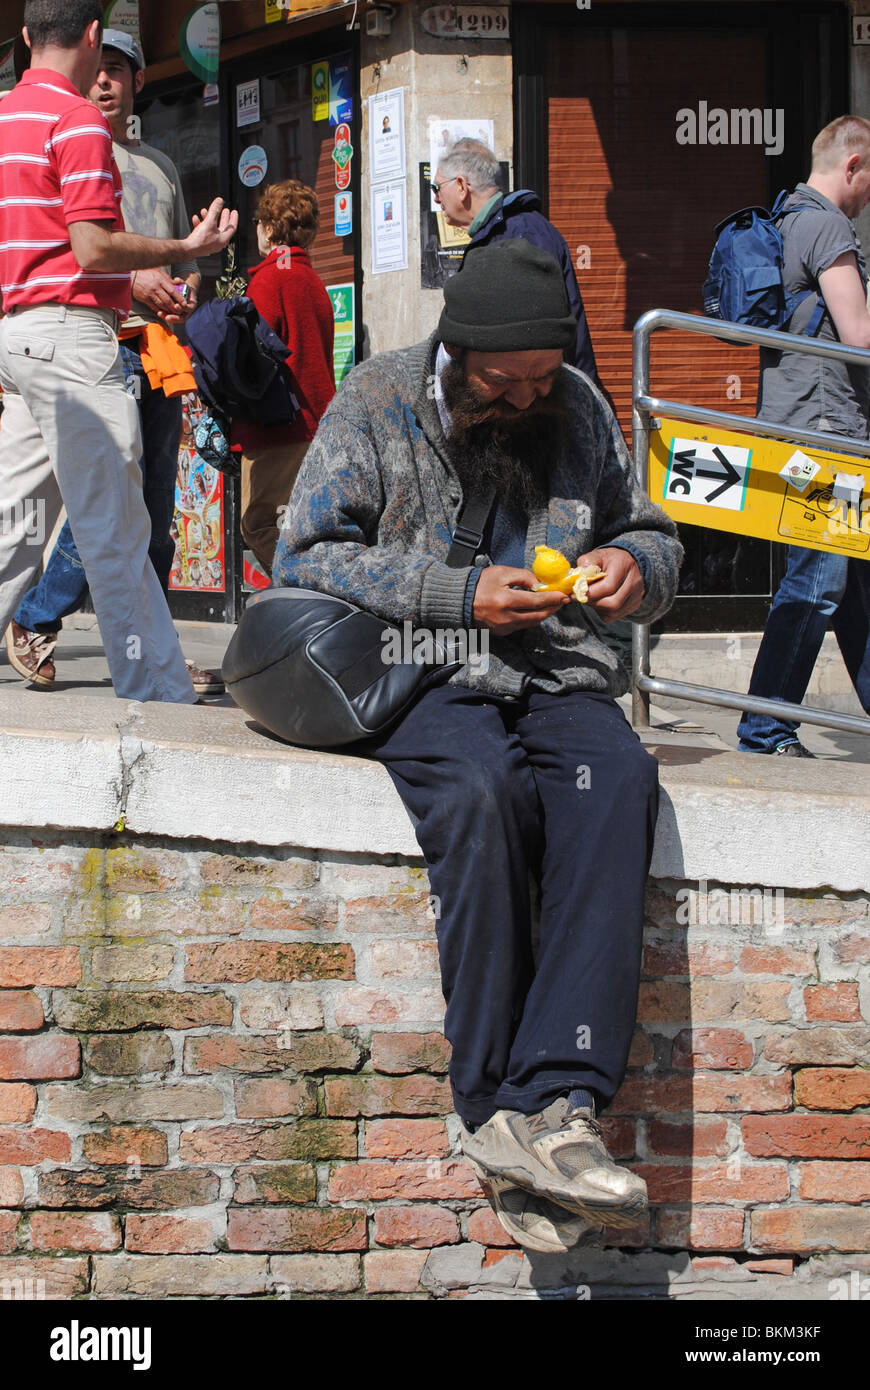 Homeless man eating an orange, Venice, Italy - Stock Image